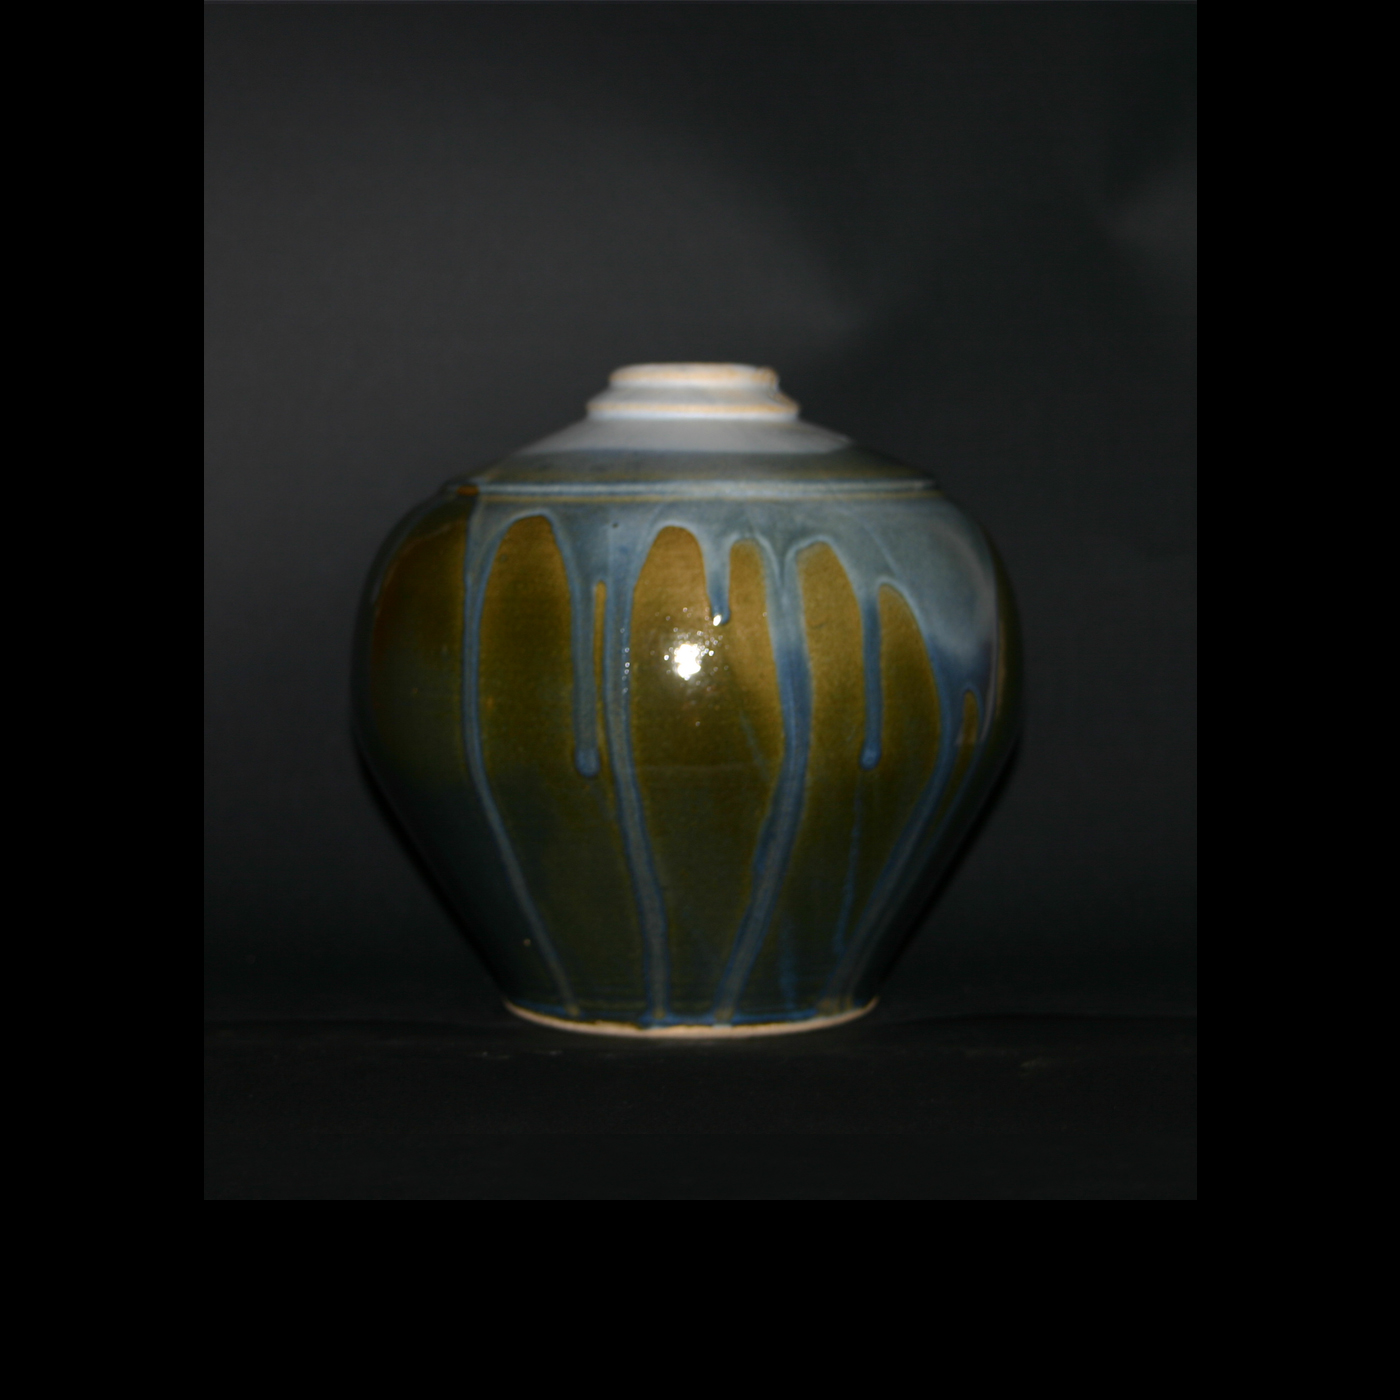 running blue on green vase